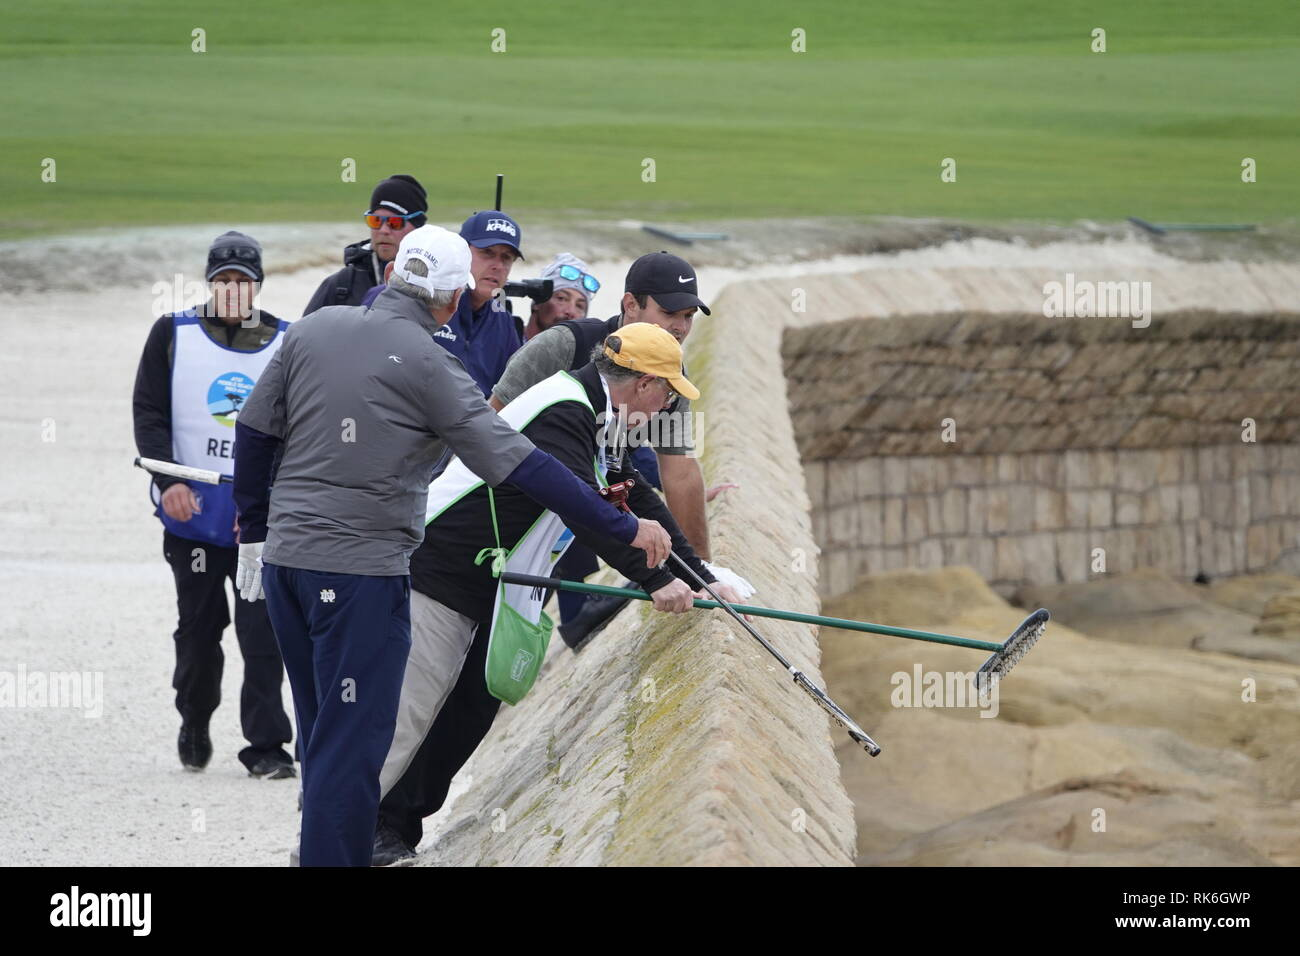 9th February, 2019  Pebble Beach Golf Links, CA, USA  Phil Mickleson and Patrick Reed and caddies search for Reeds  errant ball hit over the sea wall defenses of the 18th ball during the third round at Pebble Beach Golf Course during the AT&T Pro-Am Credit: Motofoto/Alamy Live News - Stock Image